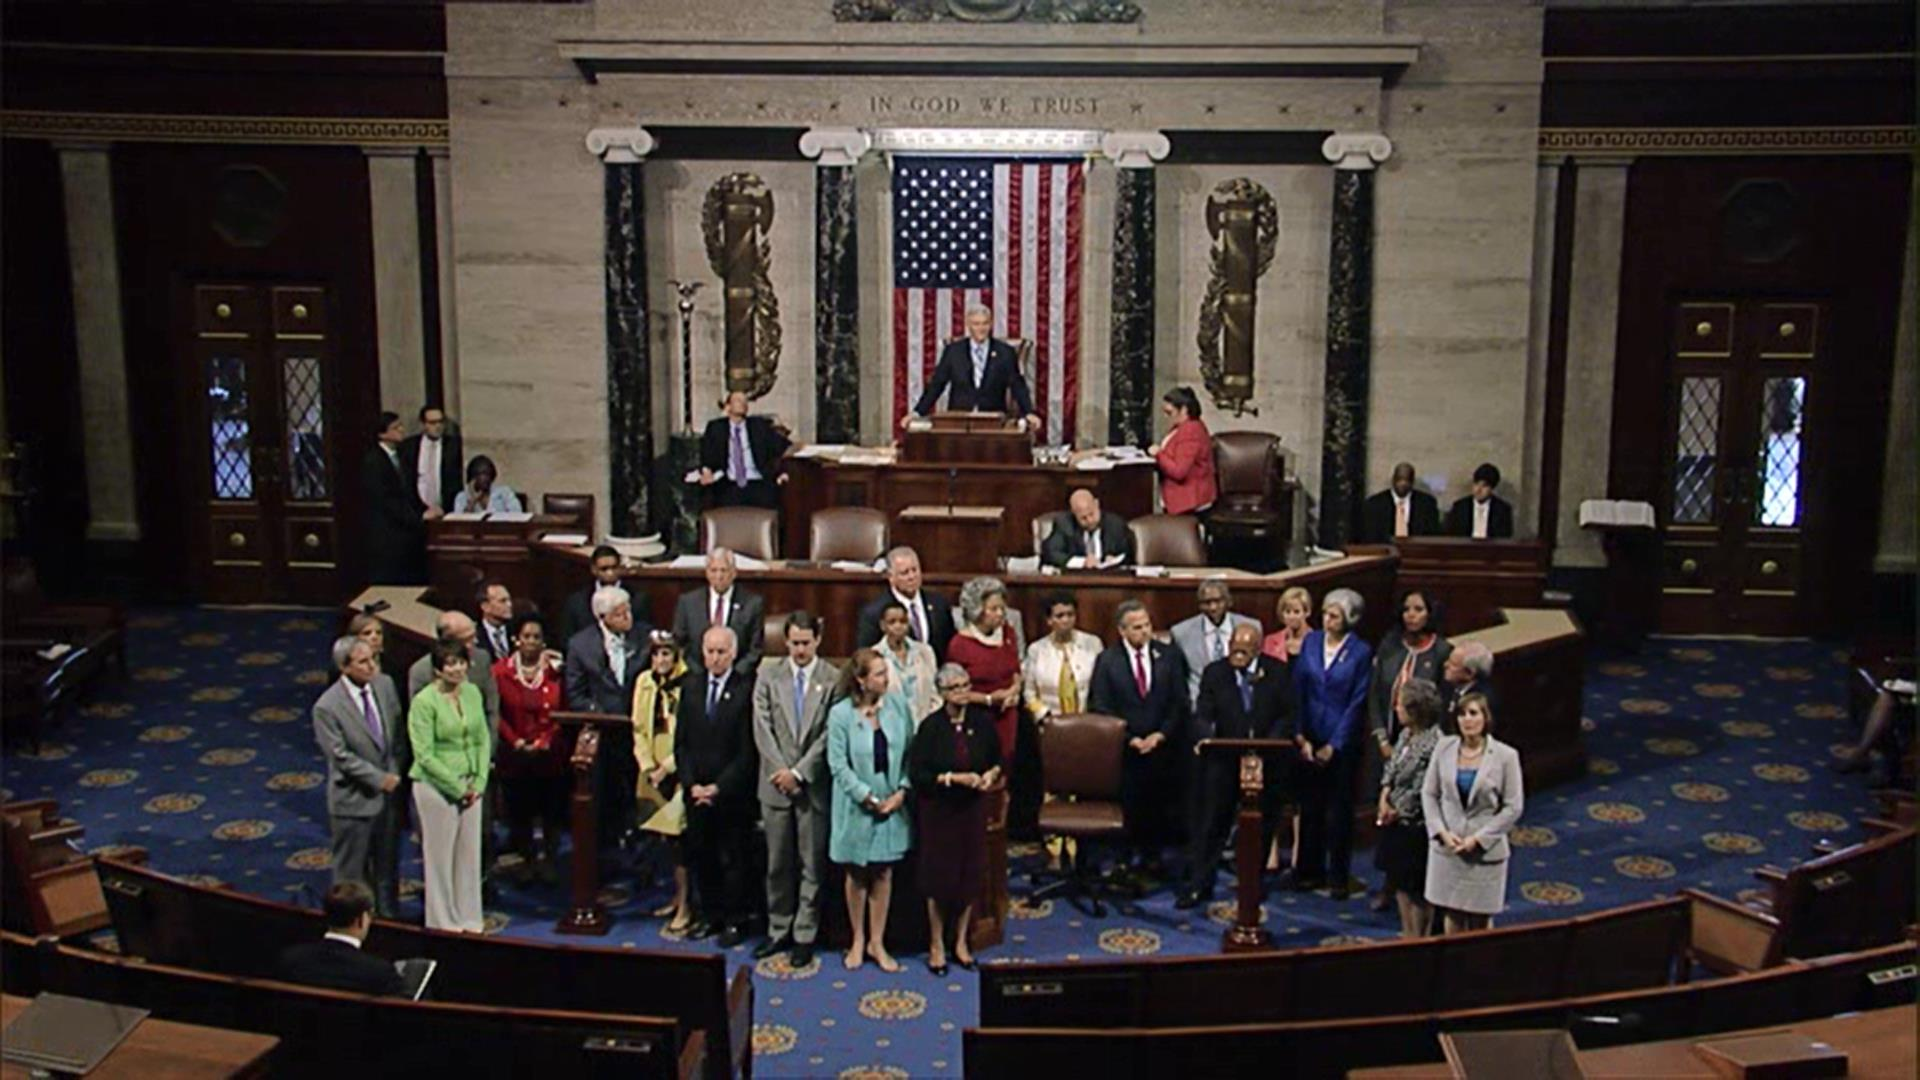 U.S. House Democrats begin their sit-in protest of no gun control measures being voted on in the chamber.